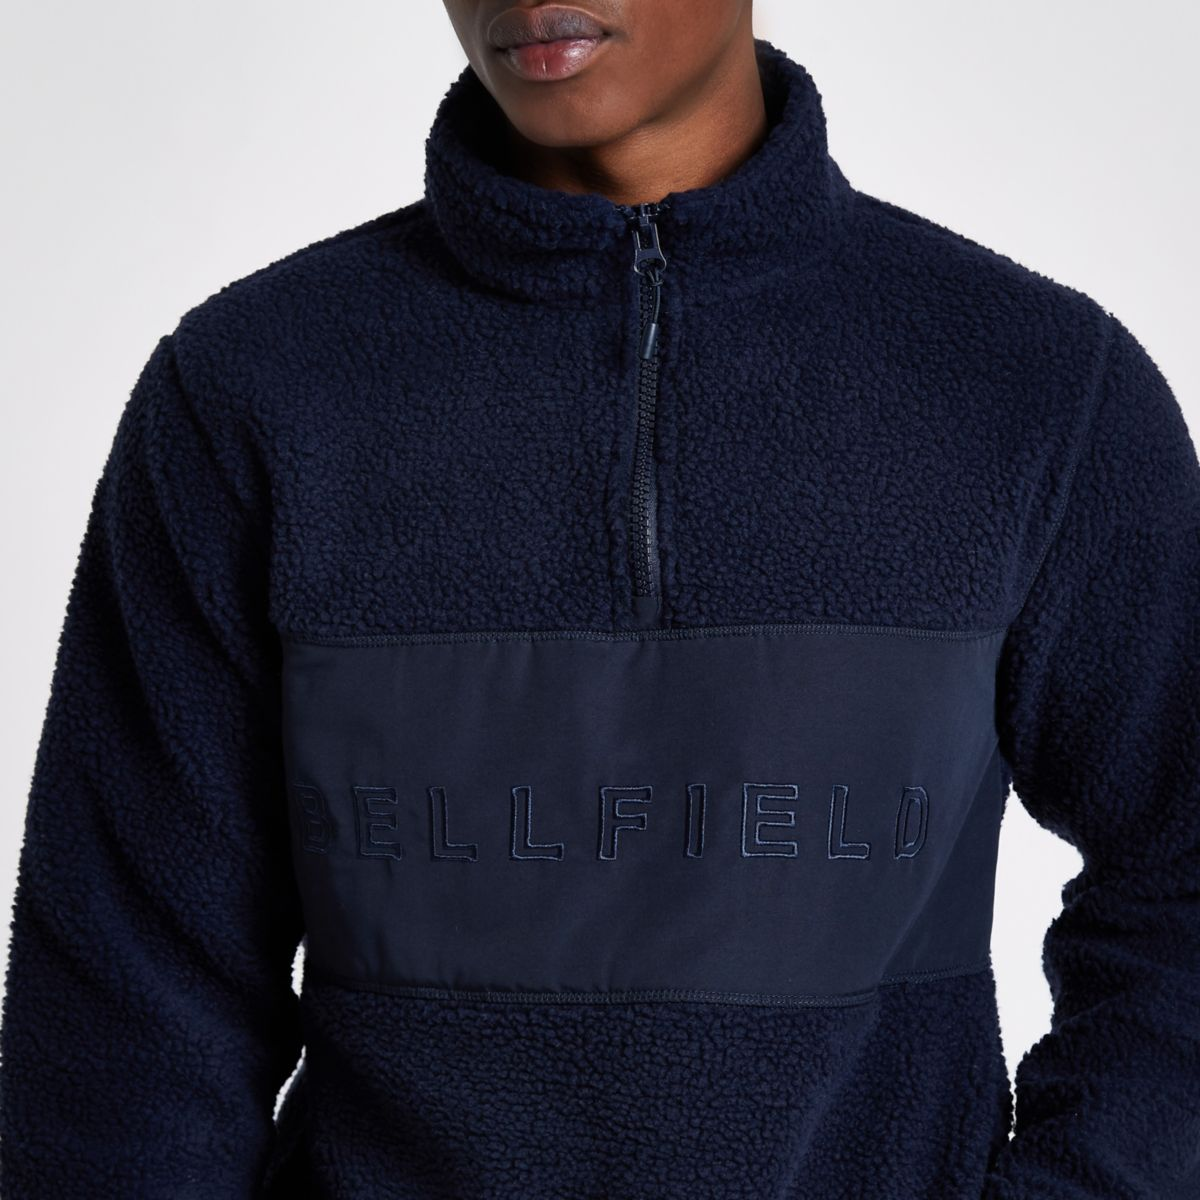 Navy Bellfield pullover fleece jacket